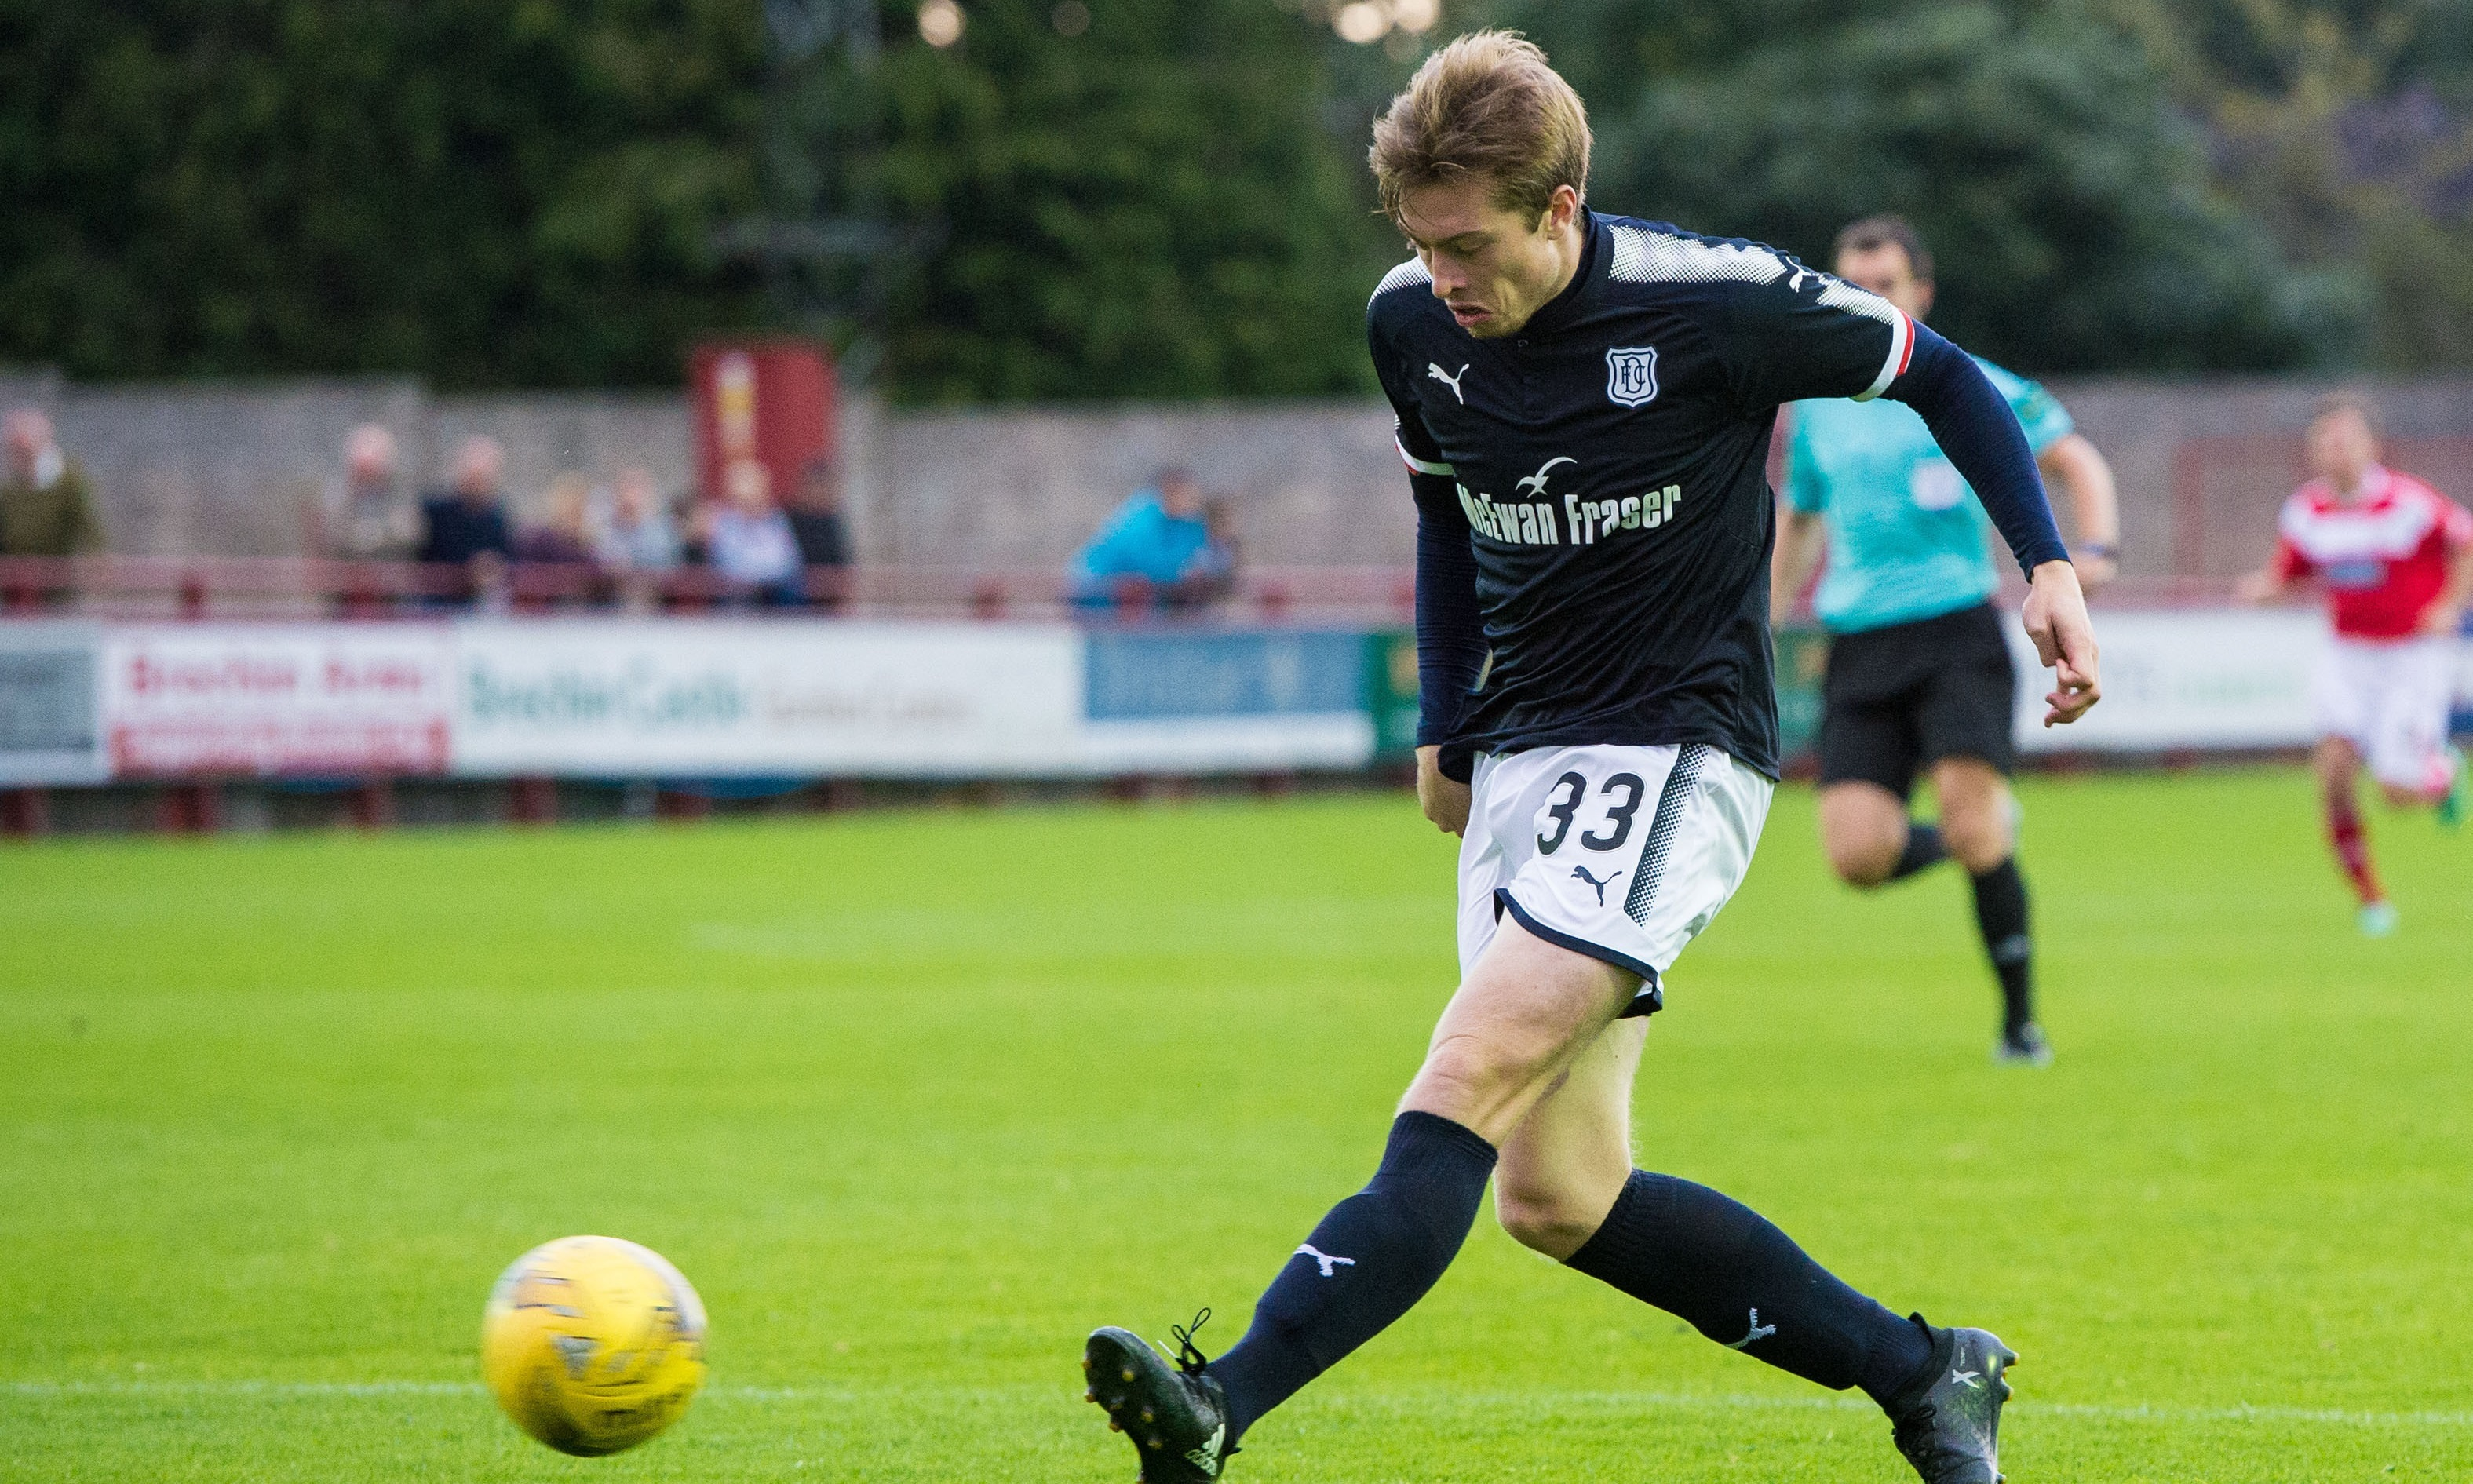 Knee ligament damage will see Craig Wighton out of action for the forseeable future.